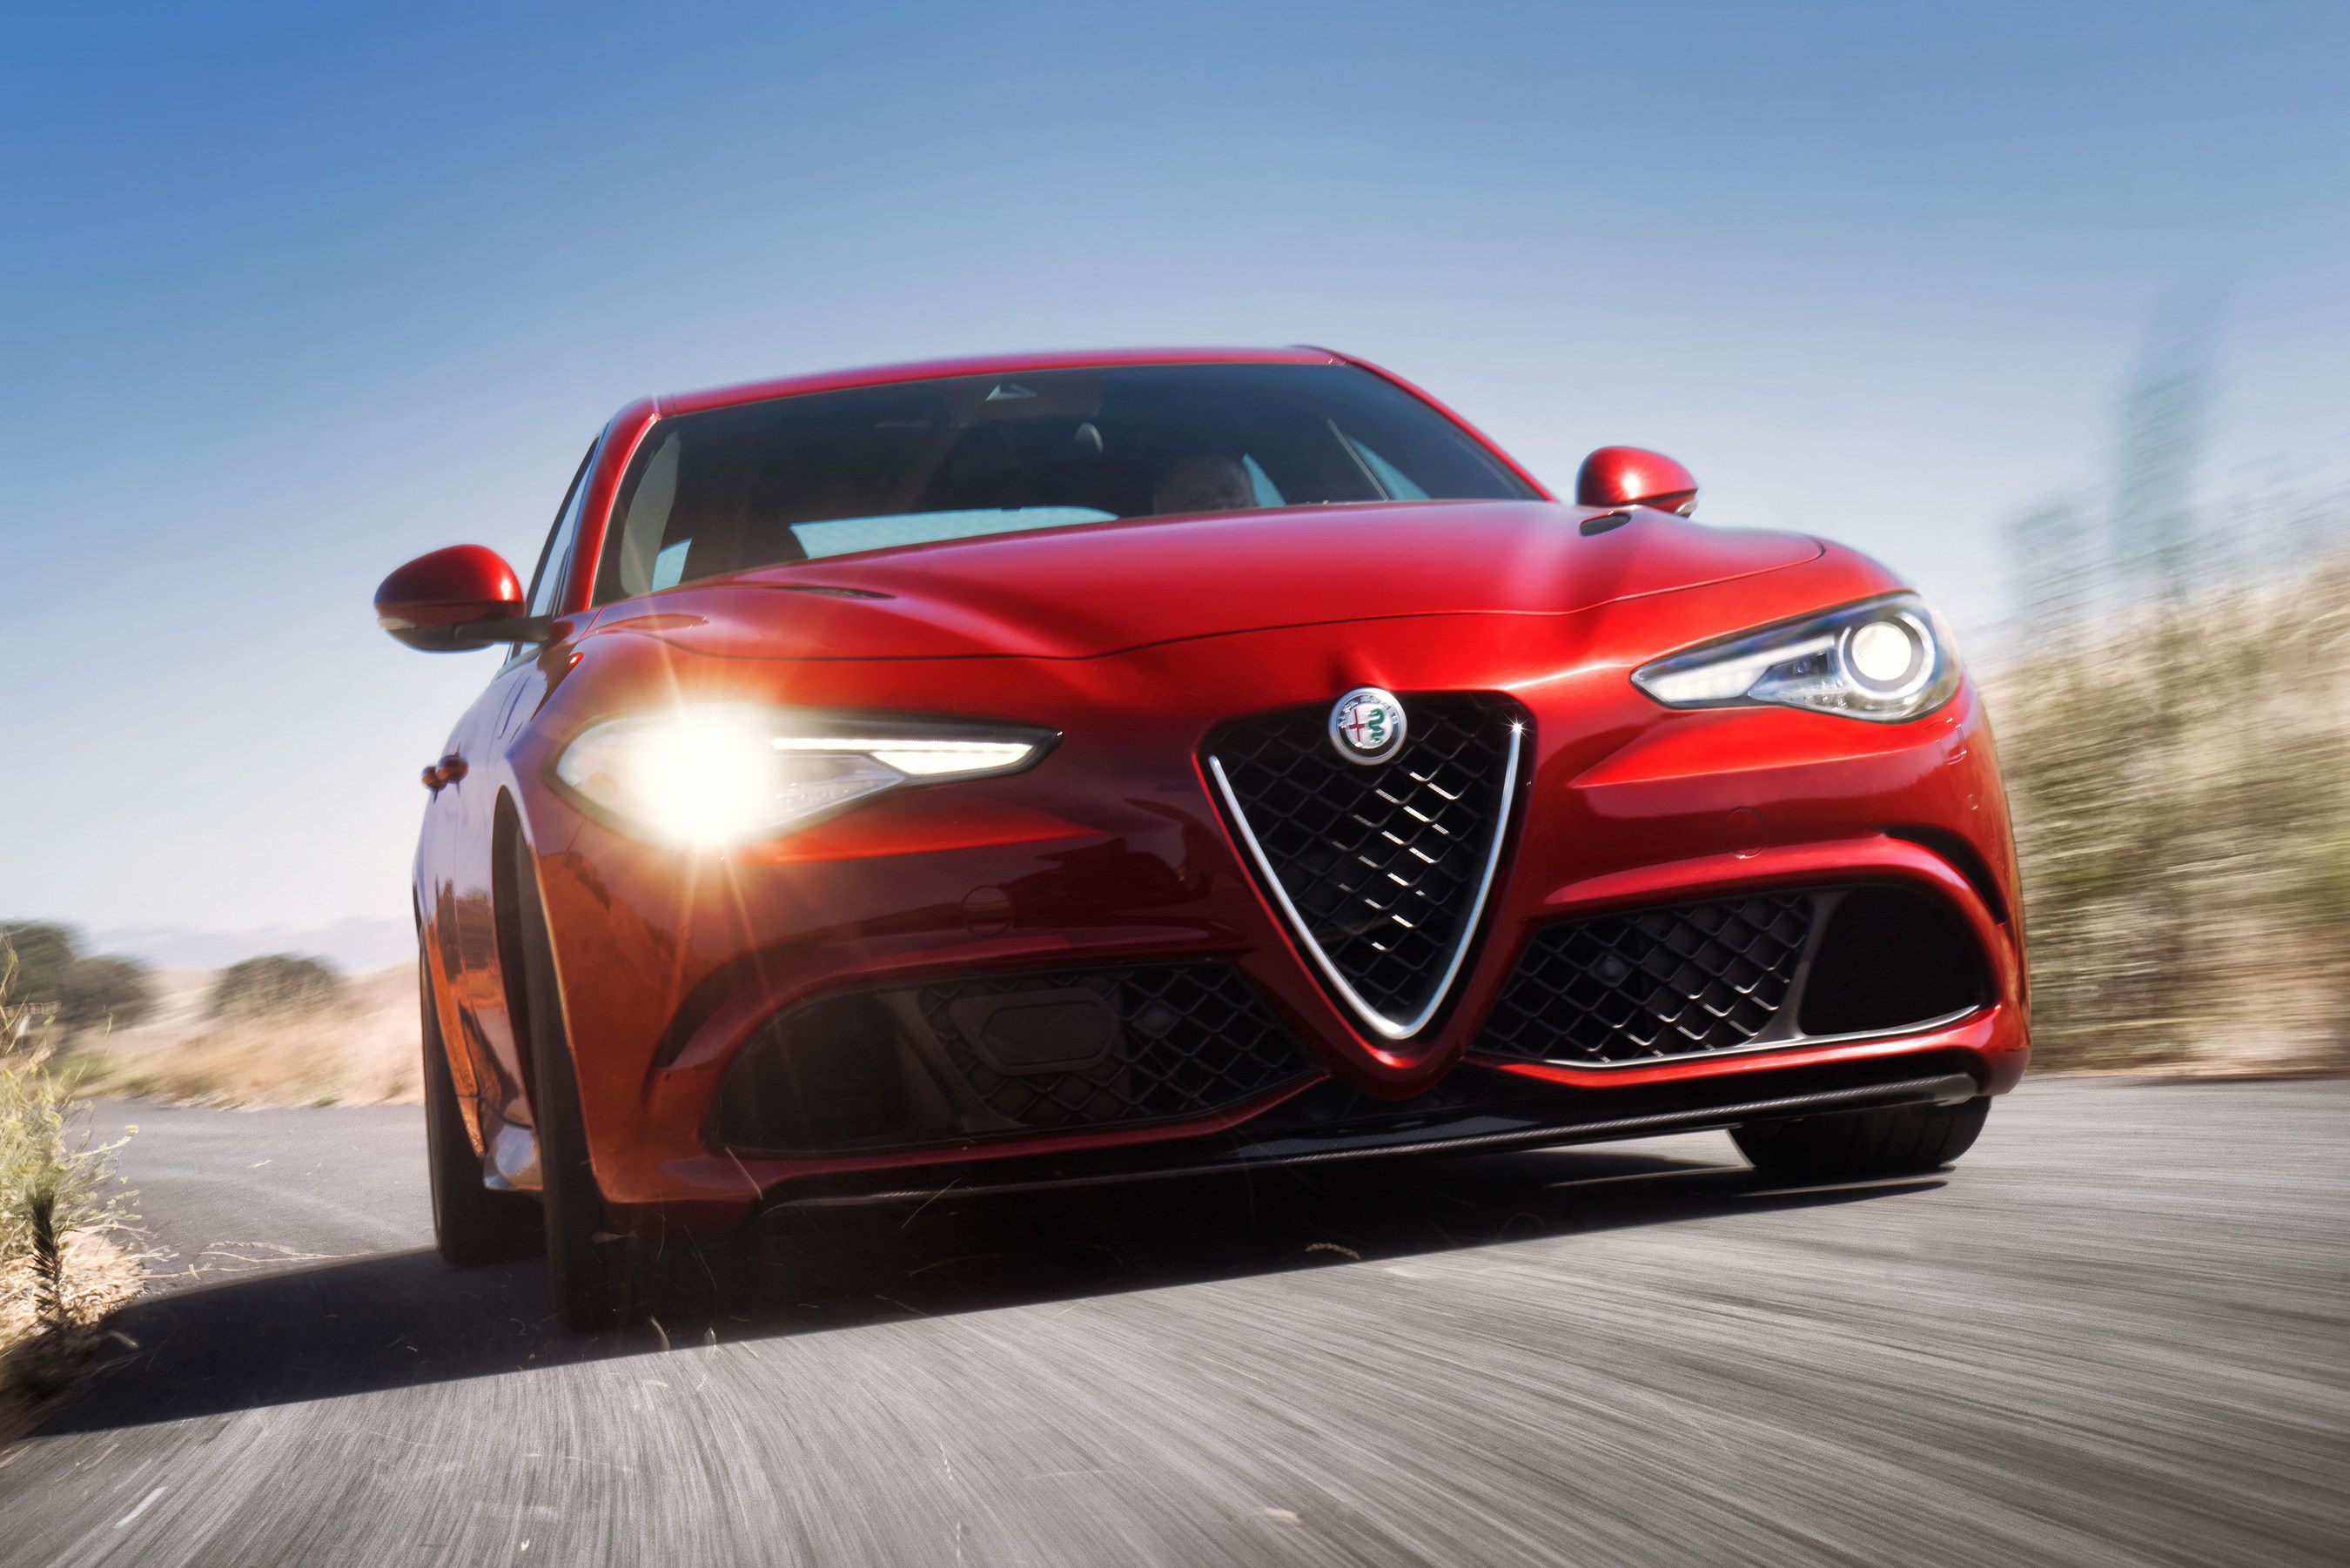 Created With The Mechanics Of Emotion All New 2017 Alfa Romeo Rear Axle Giulia Quadrifoglio Delivers Italian Style Performance Precision